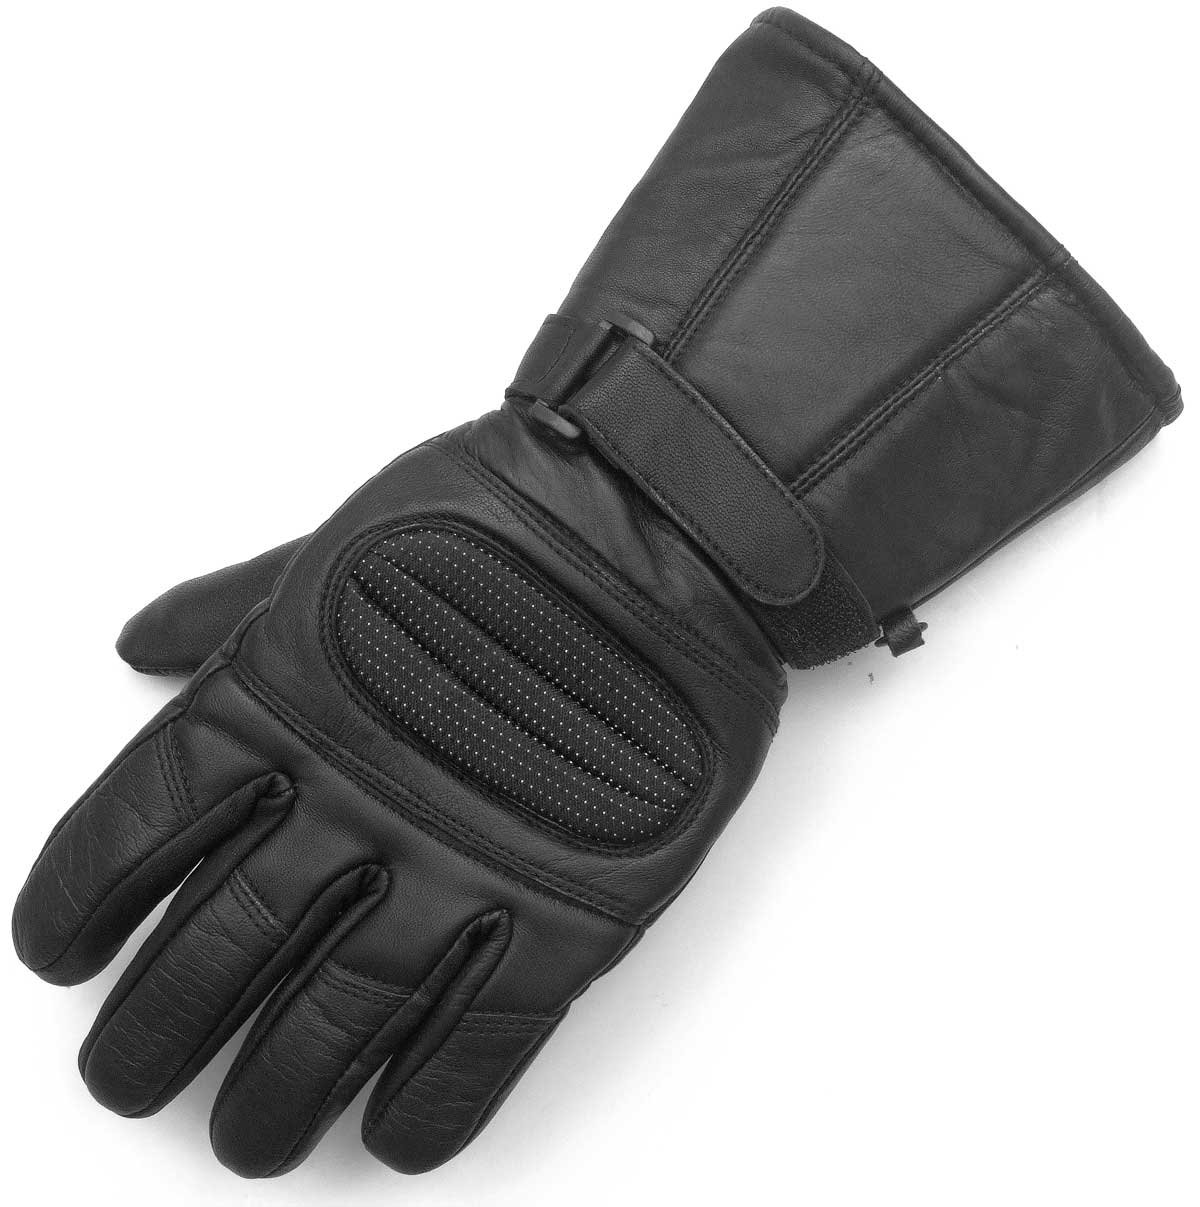 Men's Motorcycle Gauntlet Leather Windproof Heavy Duty Winter Biker Gloves M